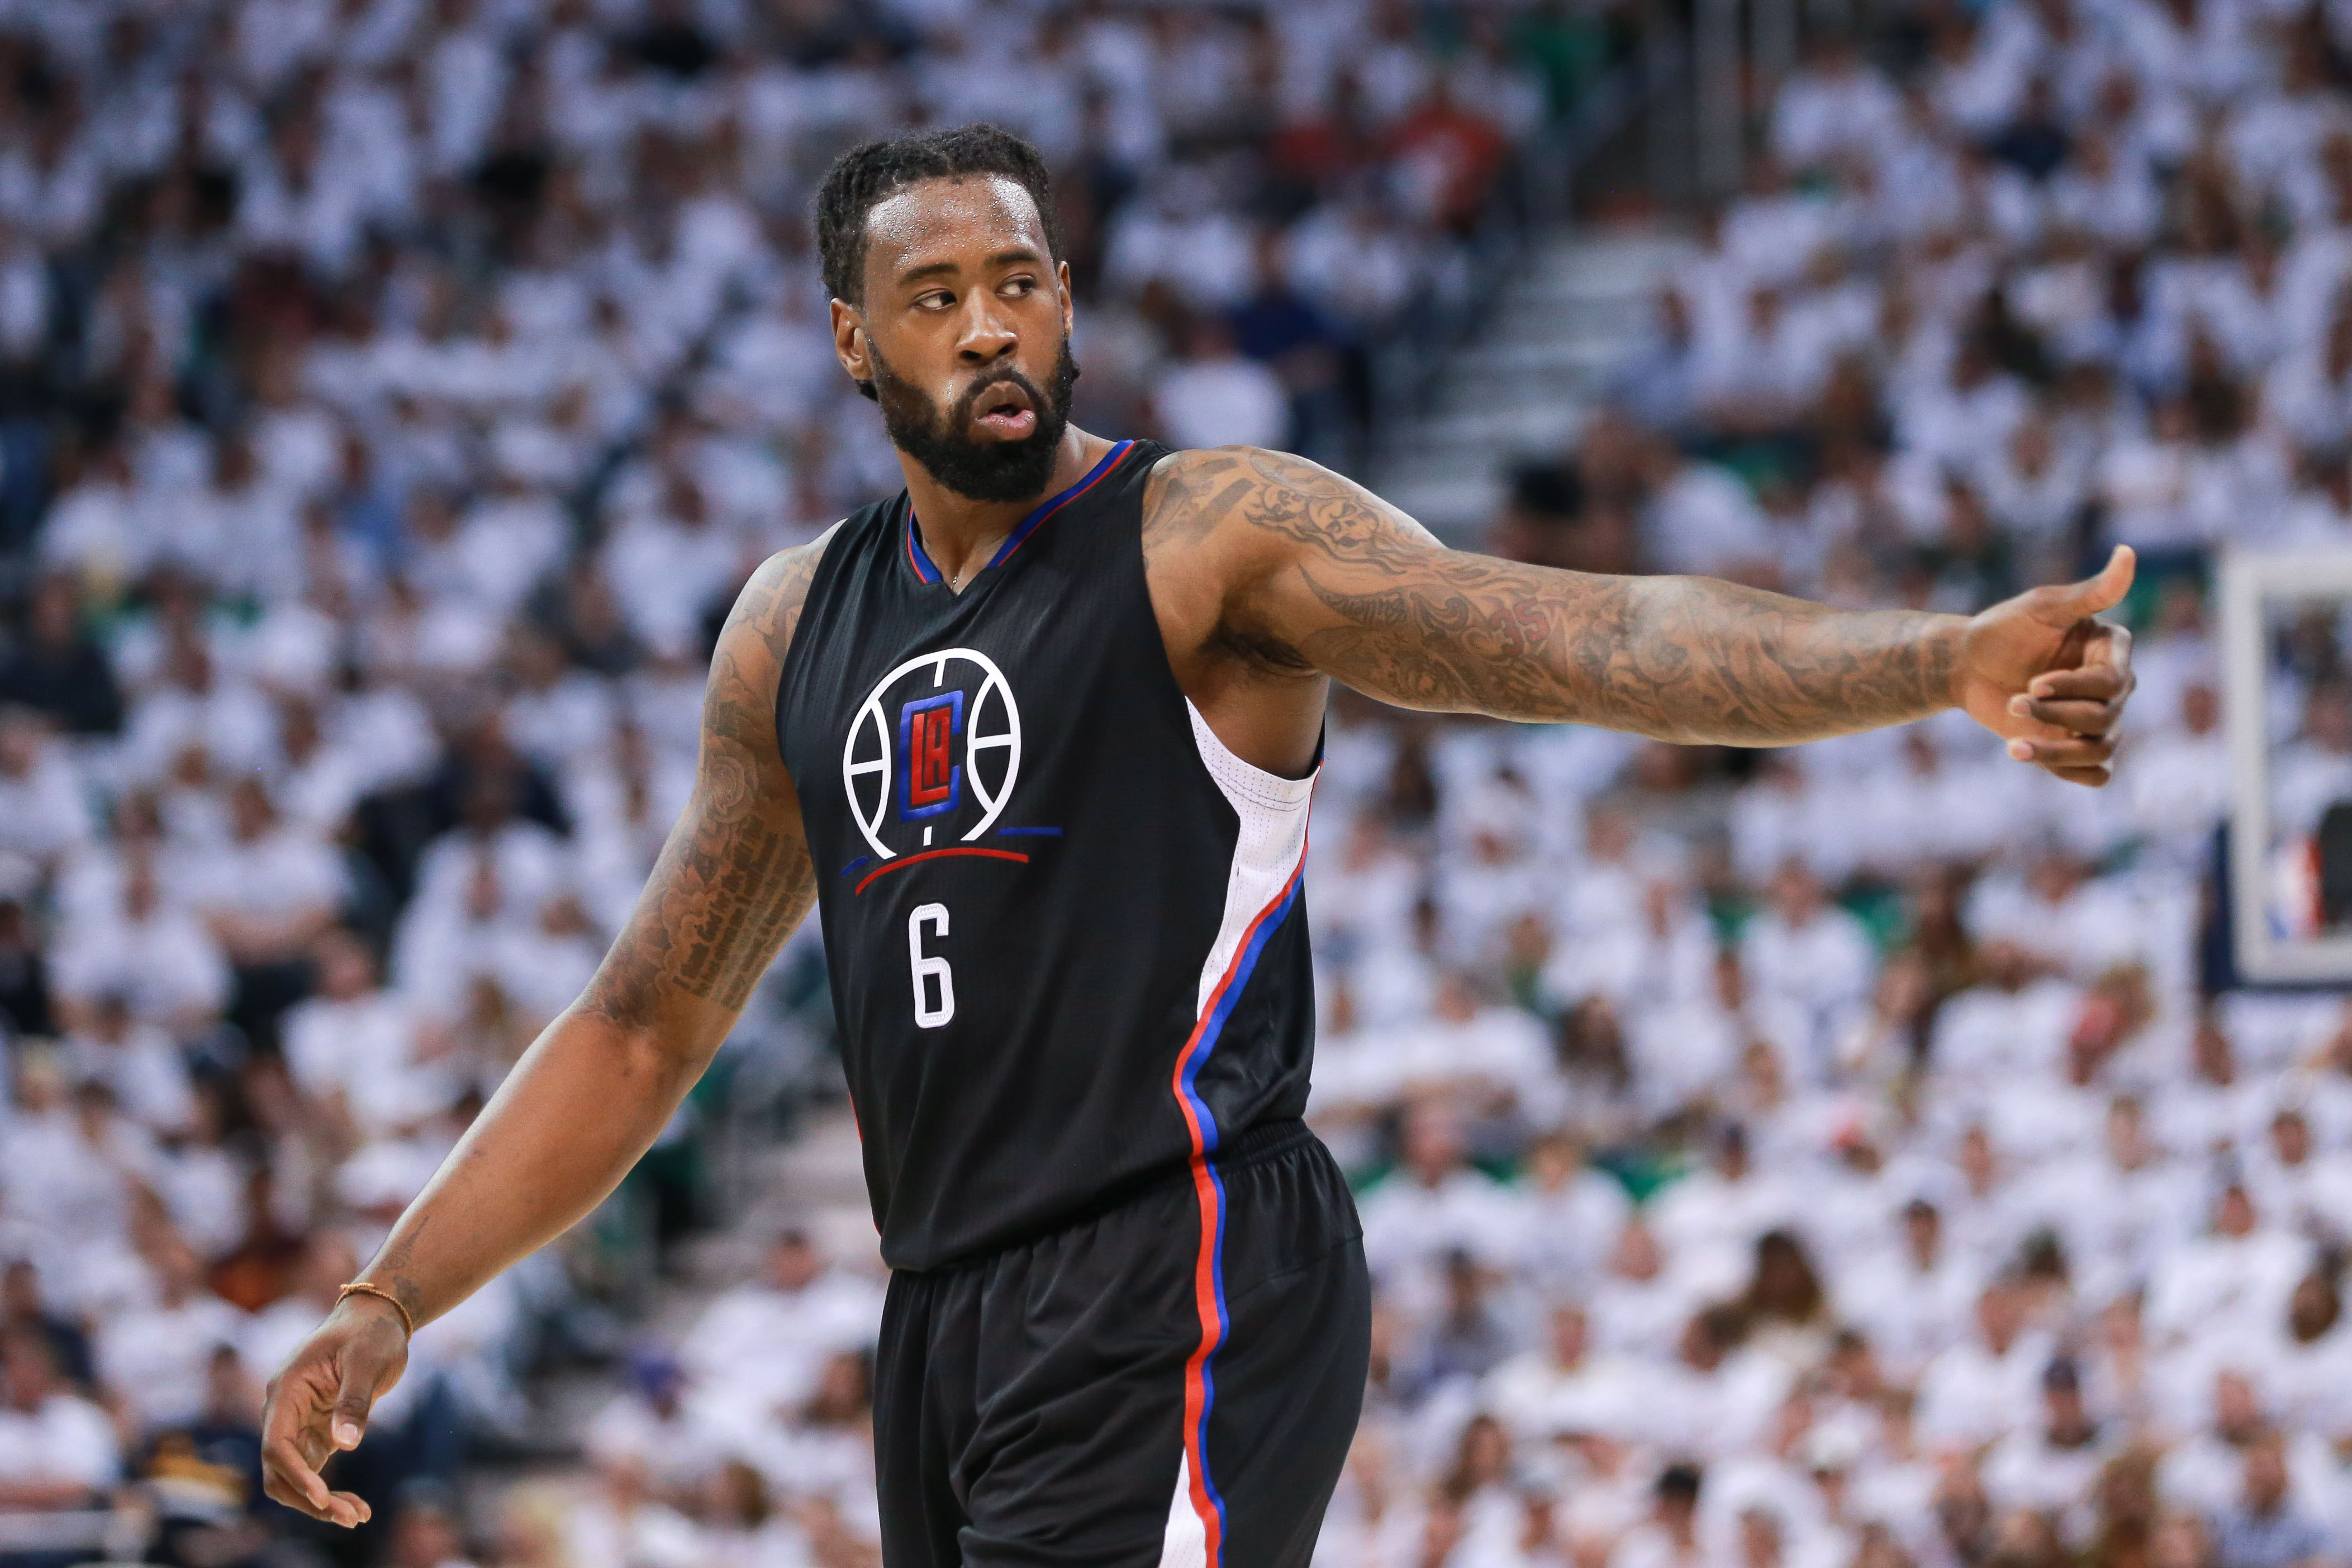 10028449-nba-playoffs-los-angeles-clippers-at-utah-jazz